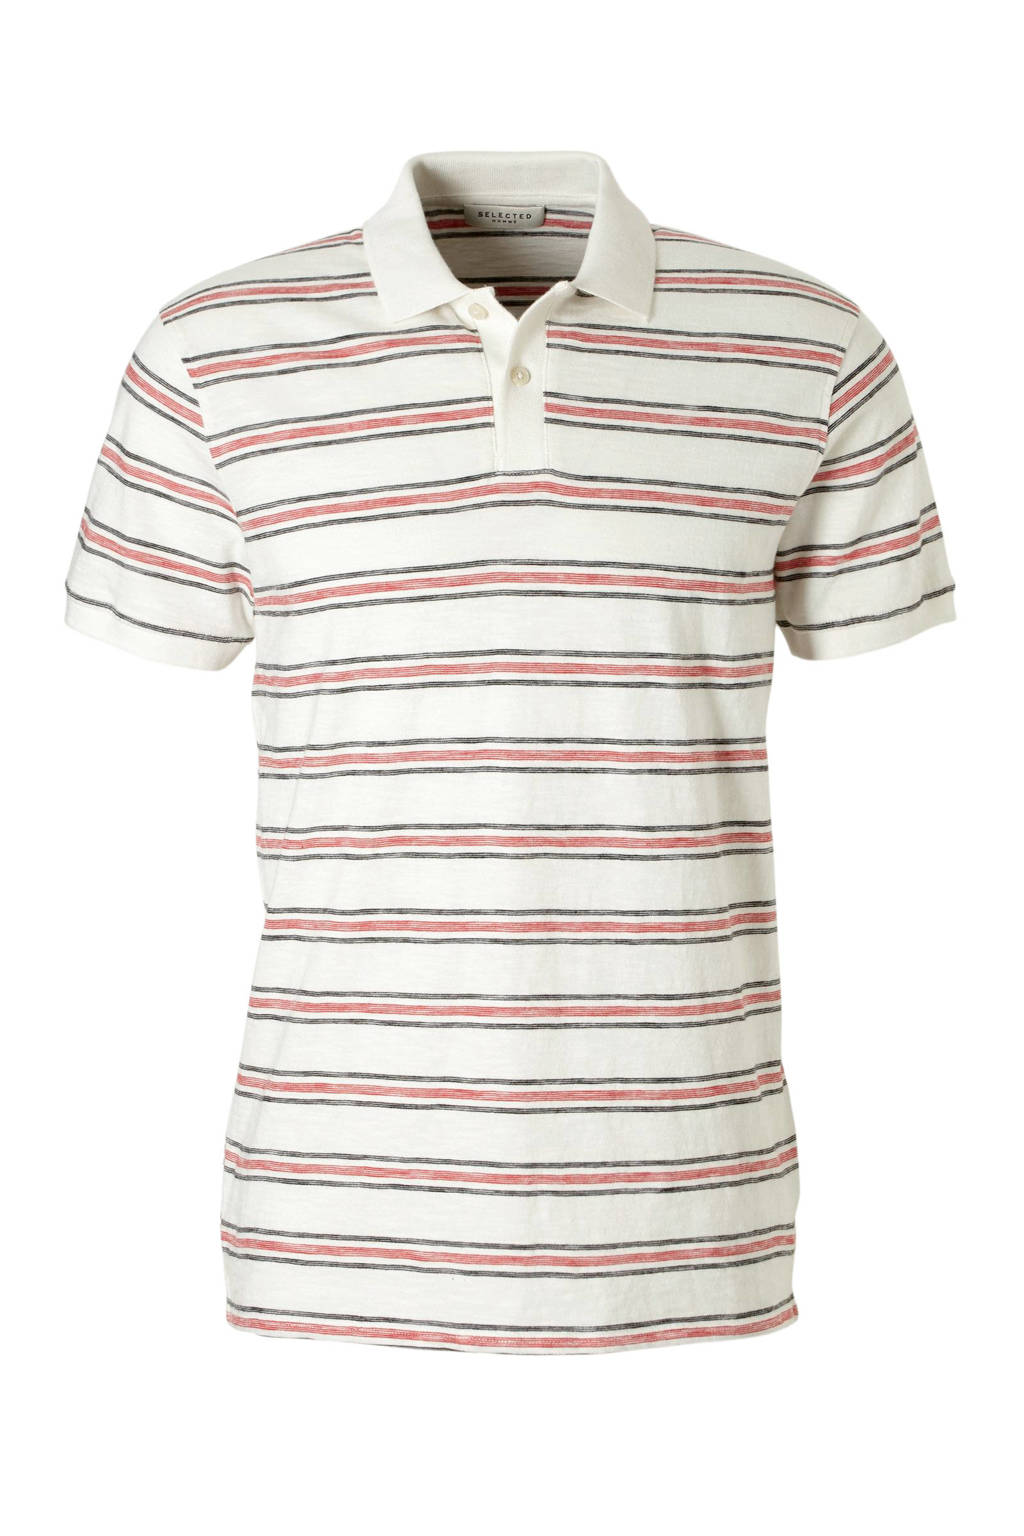 SELECTED HOMME polo, Wit/zwart/rood